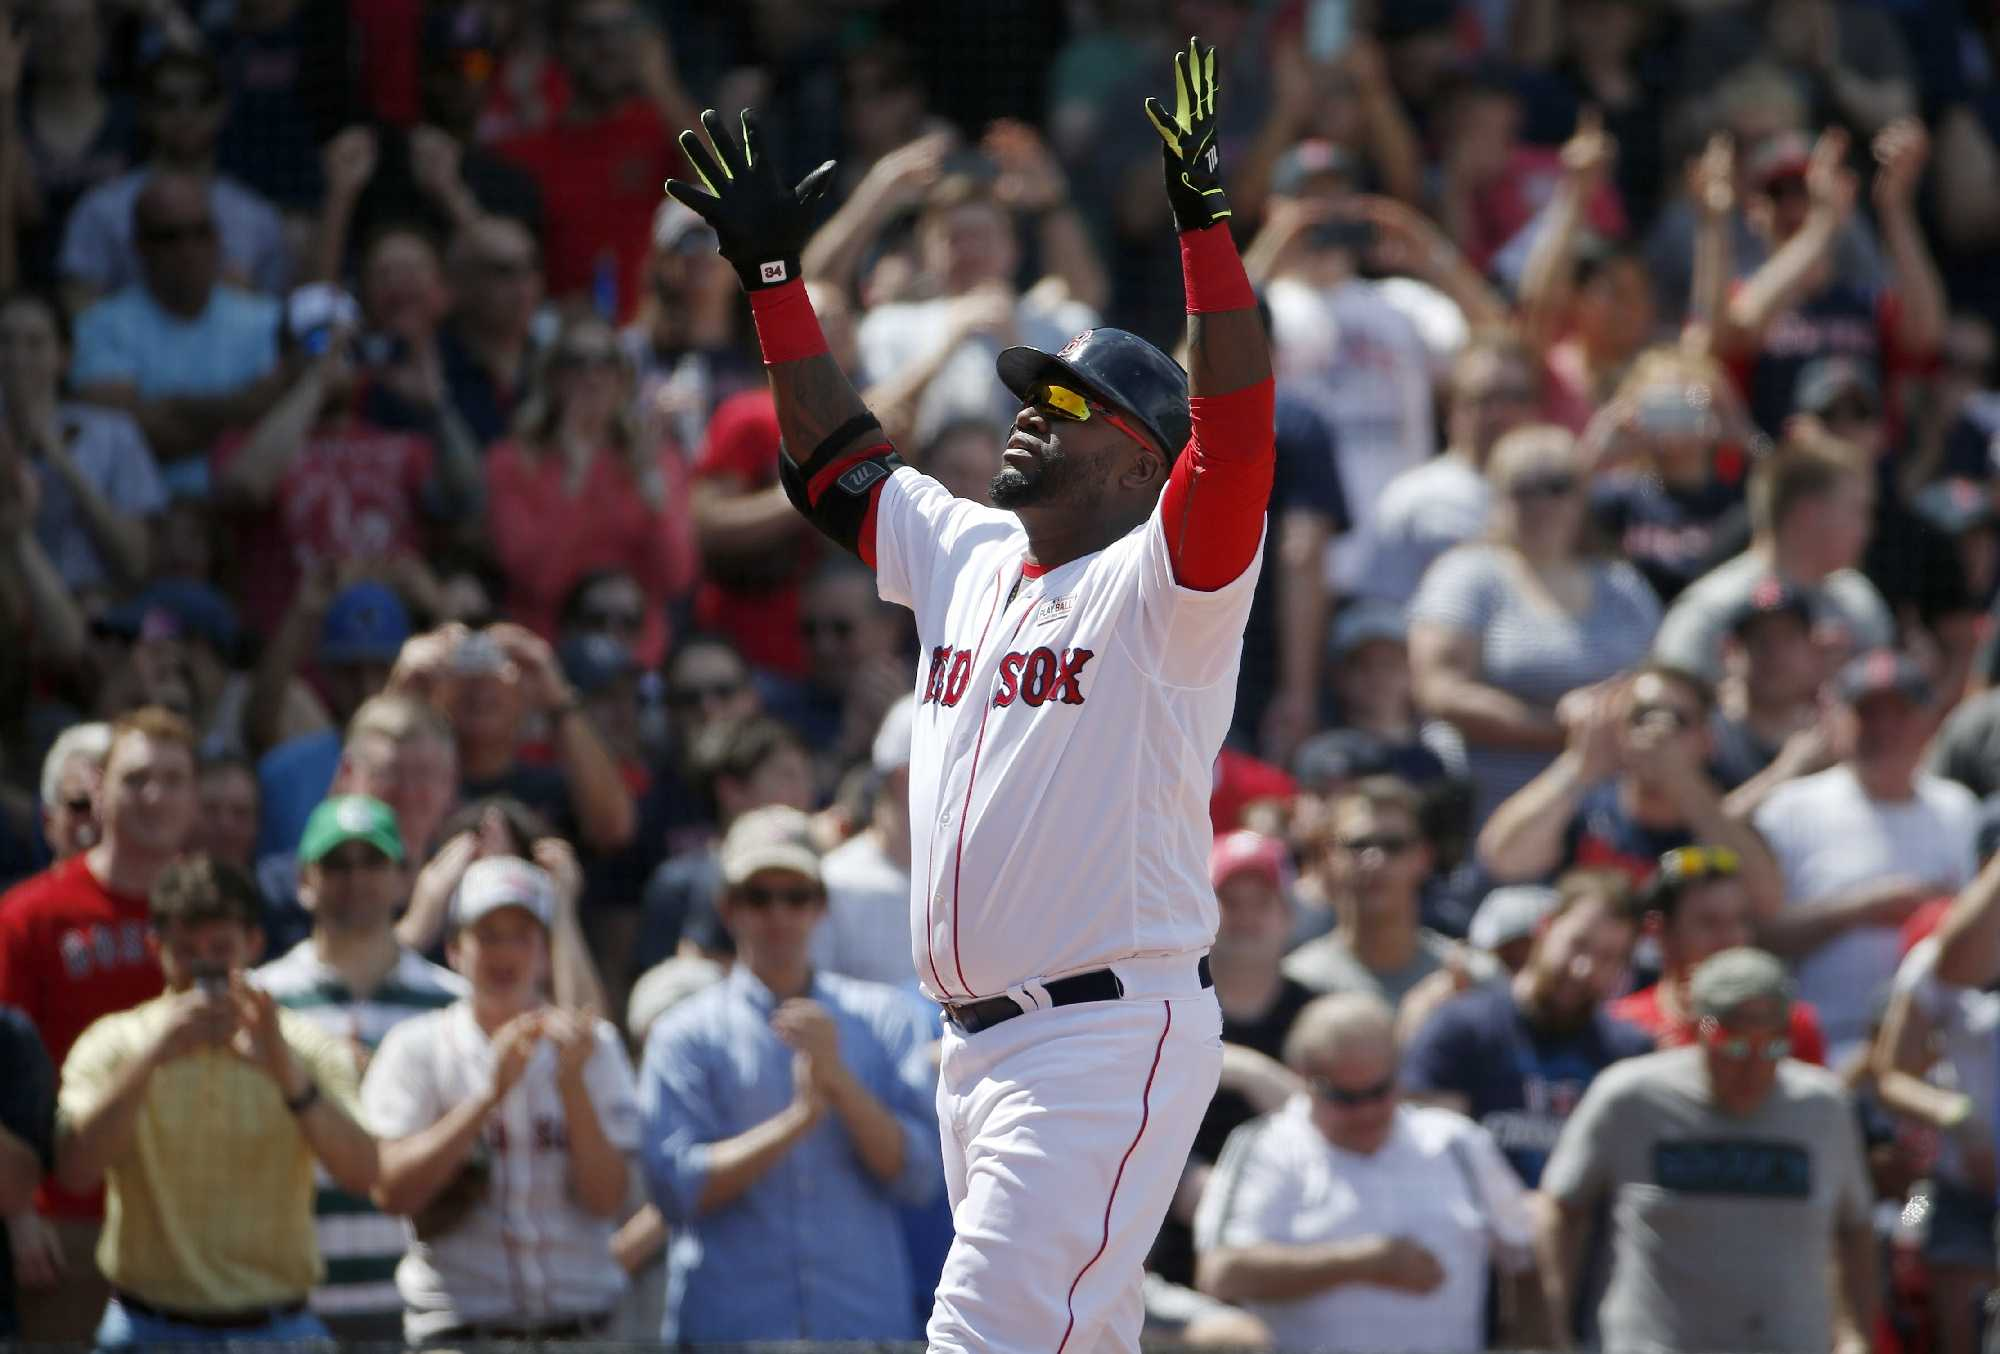 Julian Edelman pays his respect to Boston Red Sox legend David Ortiz